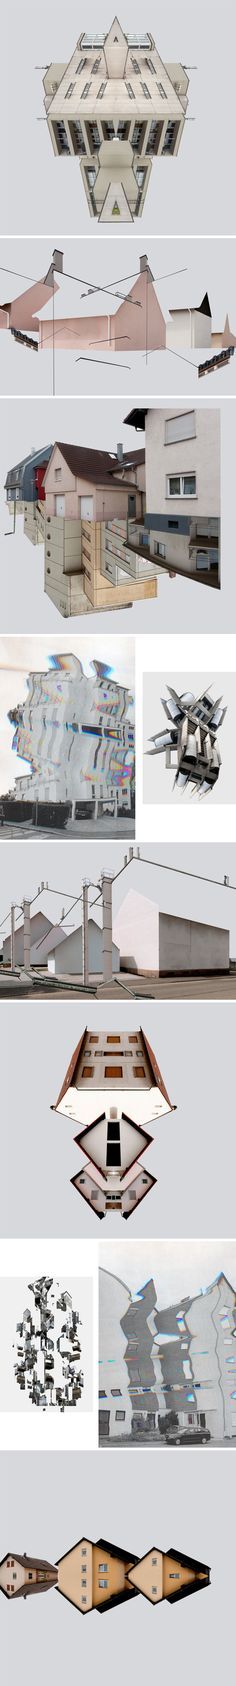 Graphic designes inspired by architecture by Patric Dreier. http://iciio.com/